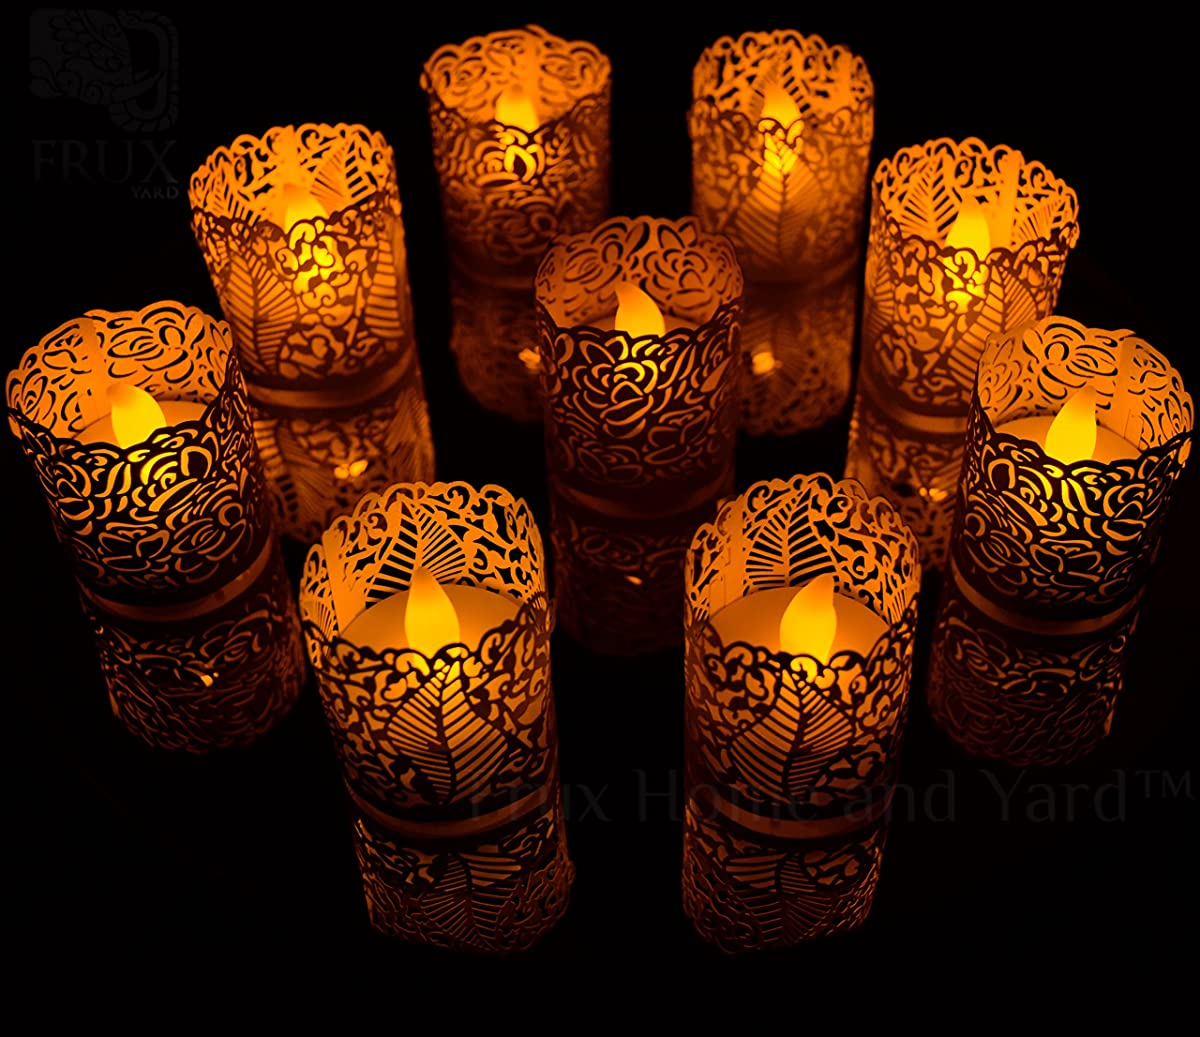 FLAMELESS TEA LIGHT VOTIVE WRAPS- 48 Silver colored laser cut decorative wraps for Frux Home and Yard Flickering LED Battery Tealight Candles (not included)